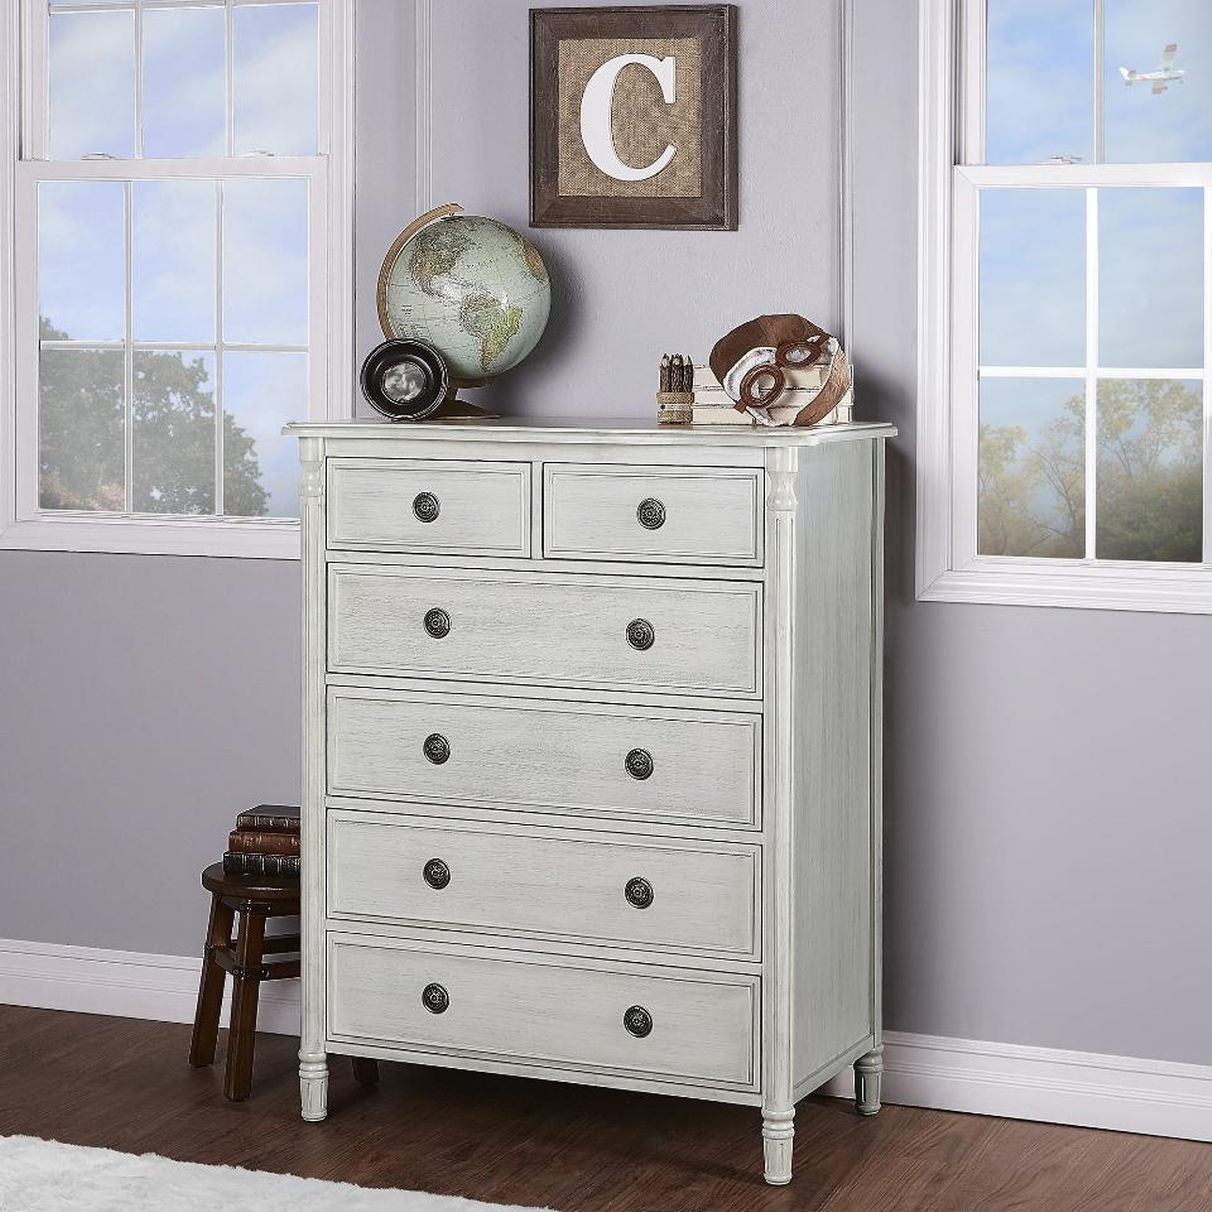 Picture of: Gray Dresser With Drawers Small